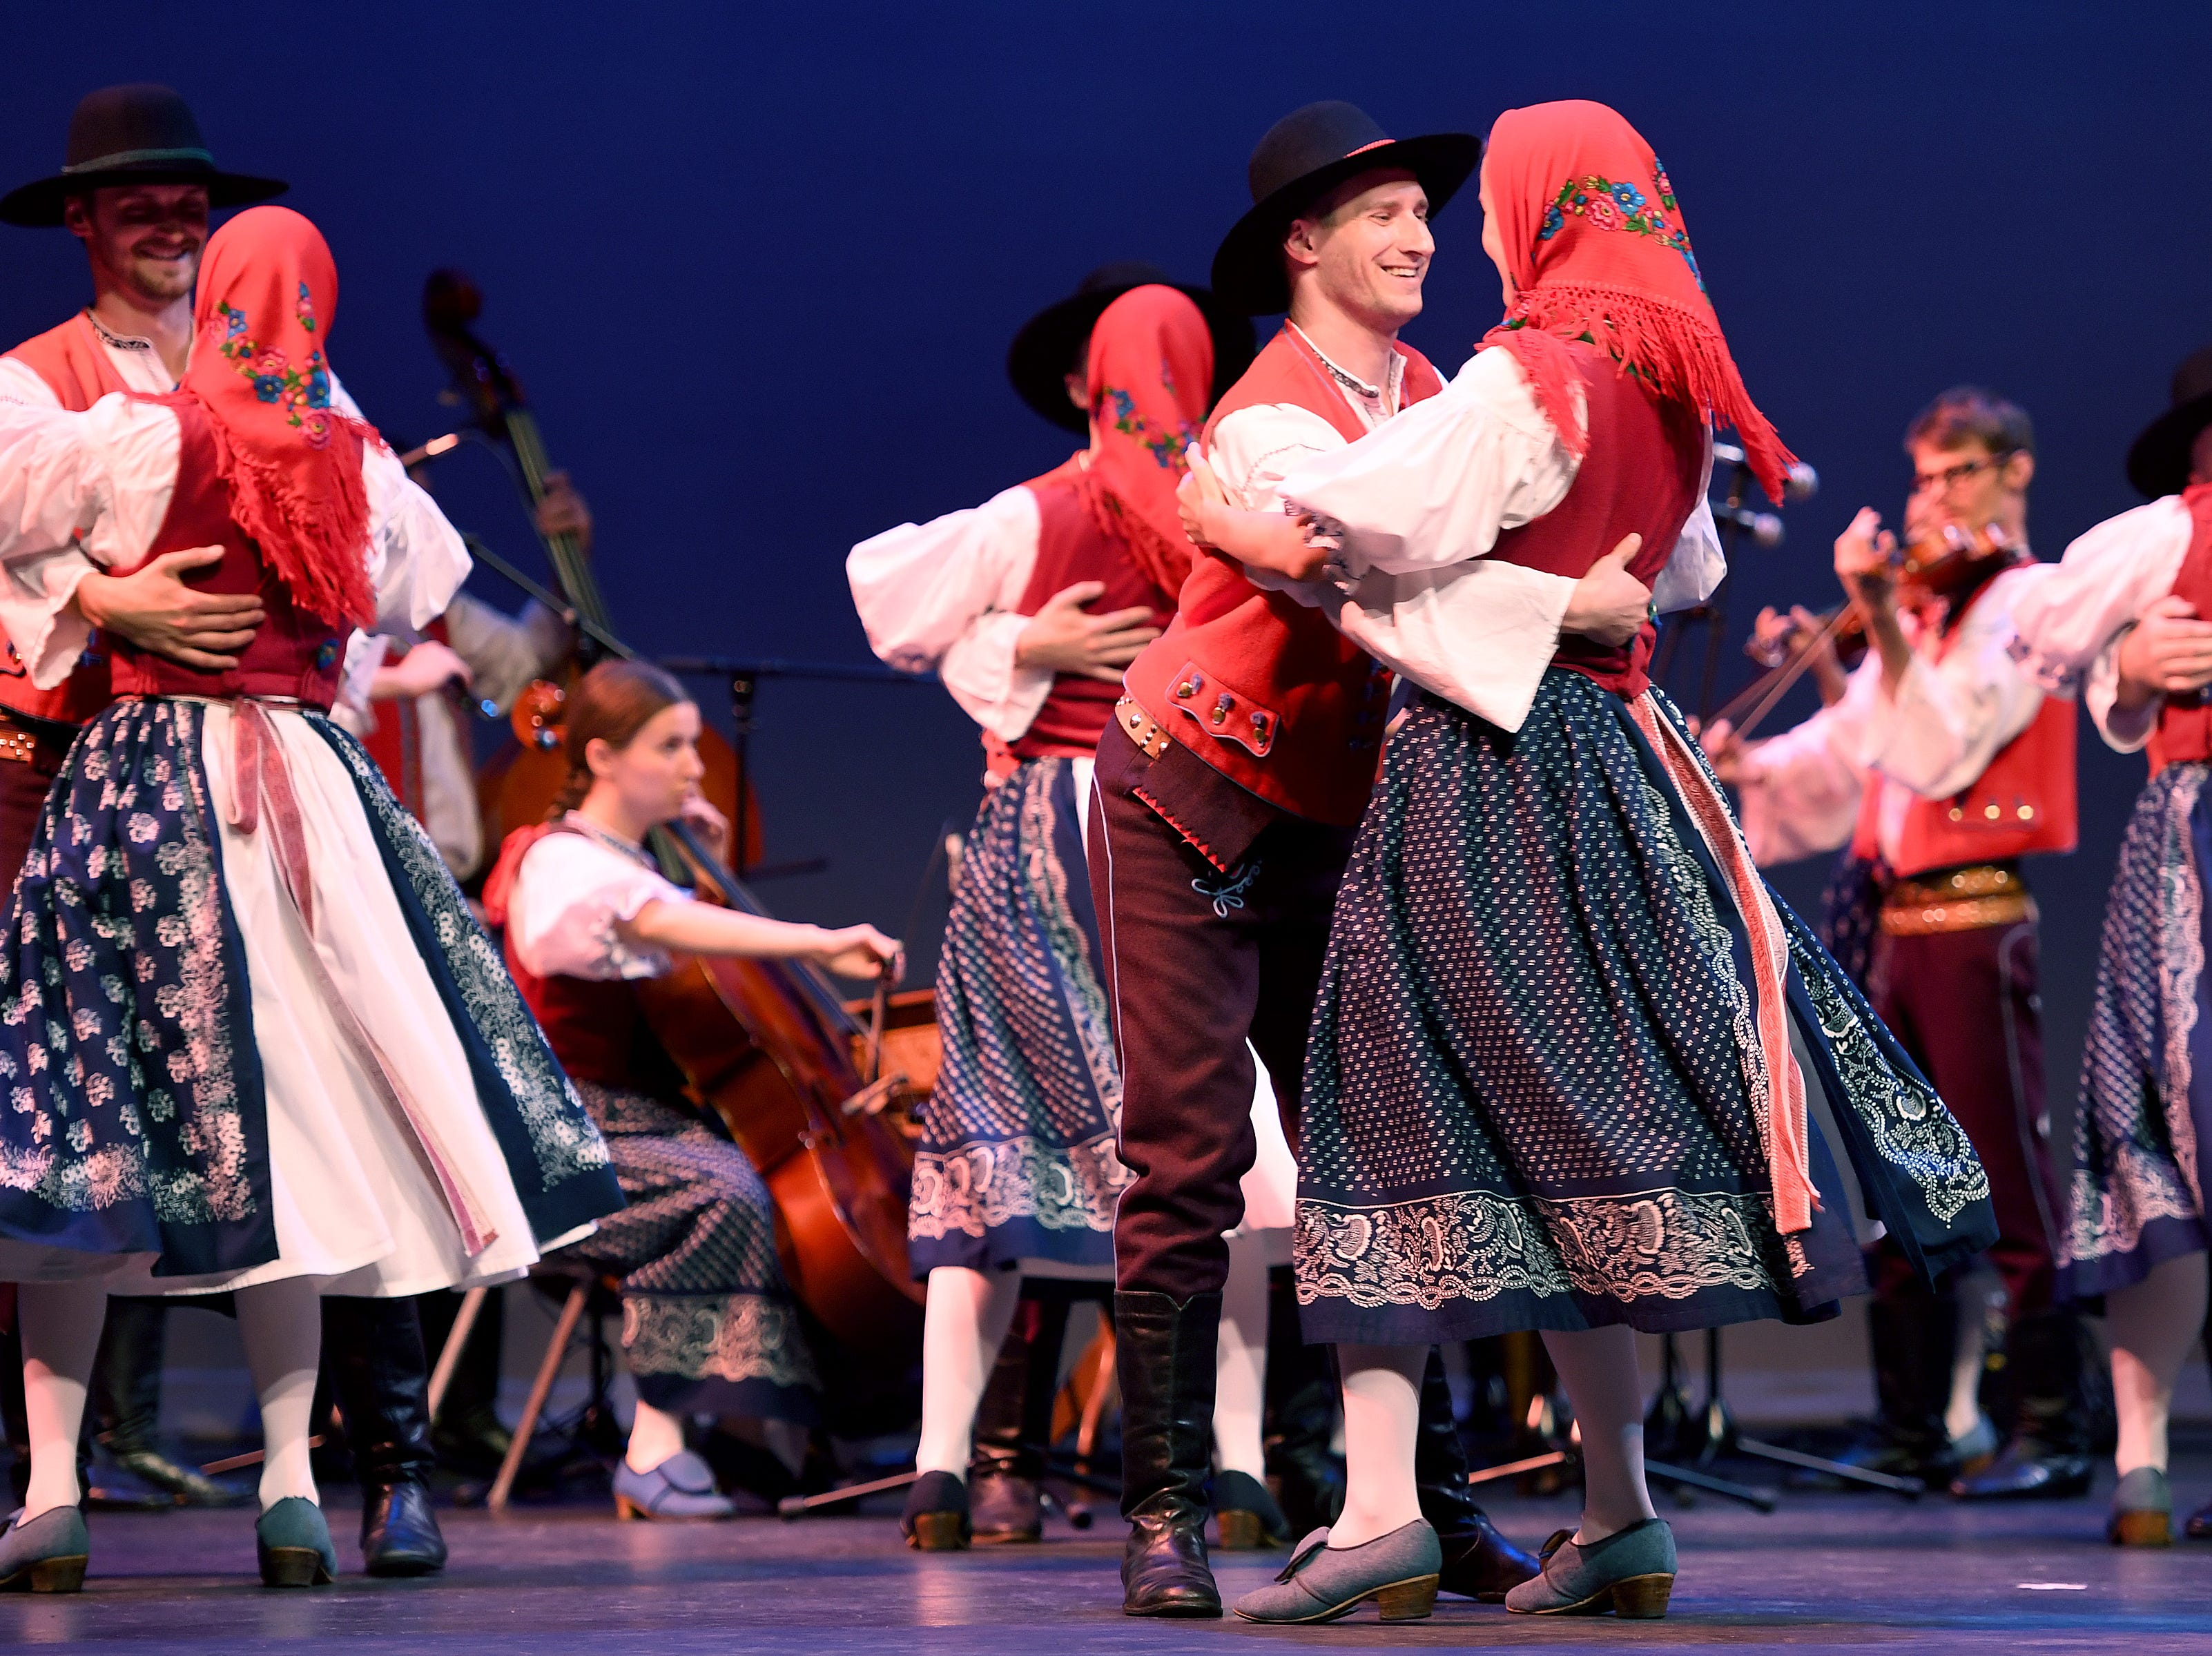 Members of the group Folk Ensemble Kašava from the Czech Republic represent their country with a dance performance during a Folkmoot Festival performance at the Diana Wortham Theatre on Friday, Aug. 27, 2018.